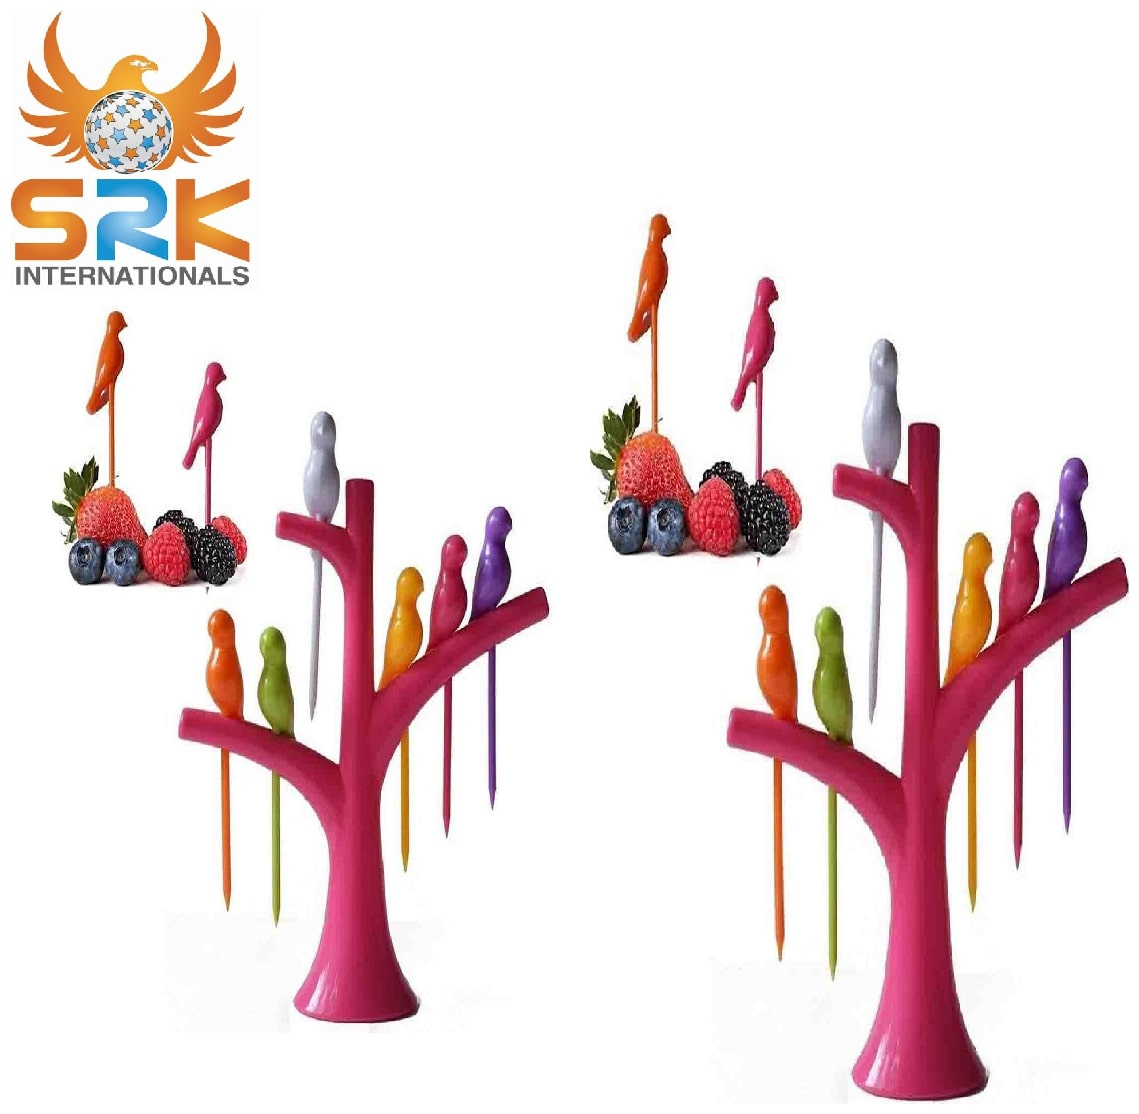 SM Birdie Plastic Fruit Fork Set with Stand, 6 pcs, Multicolour Set of  2 by Super Saver Sale